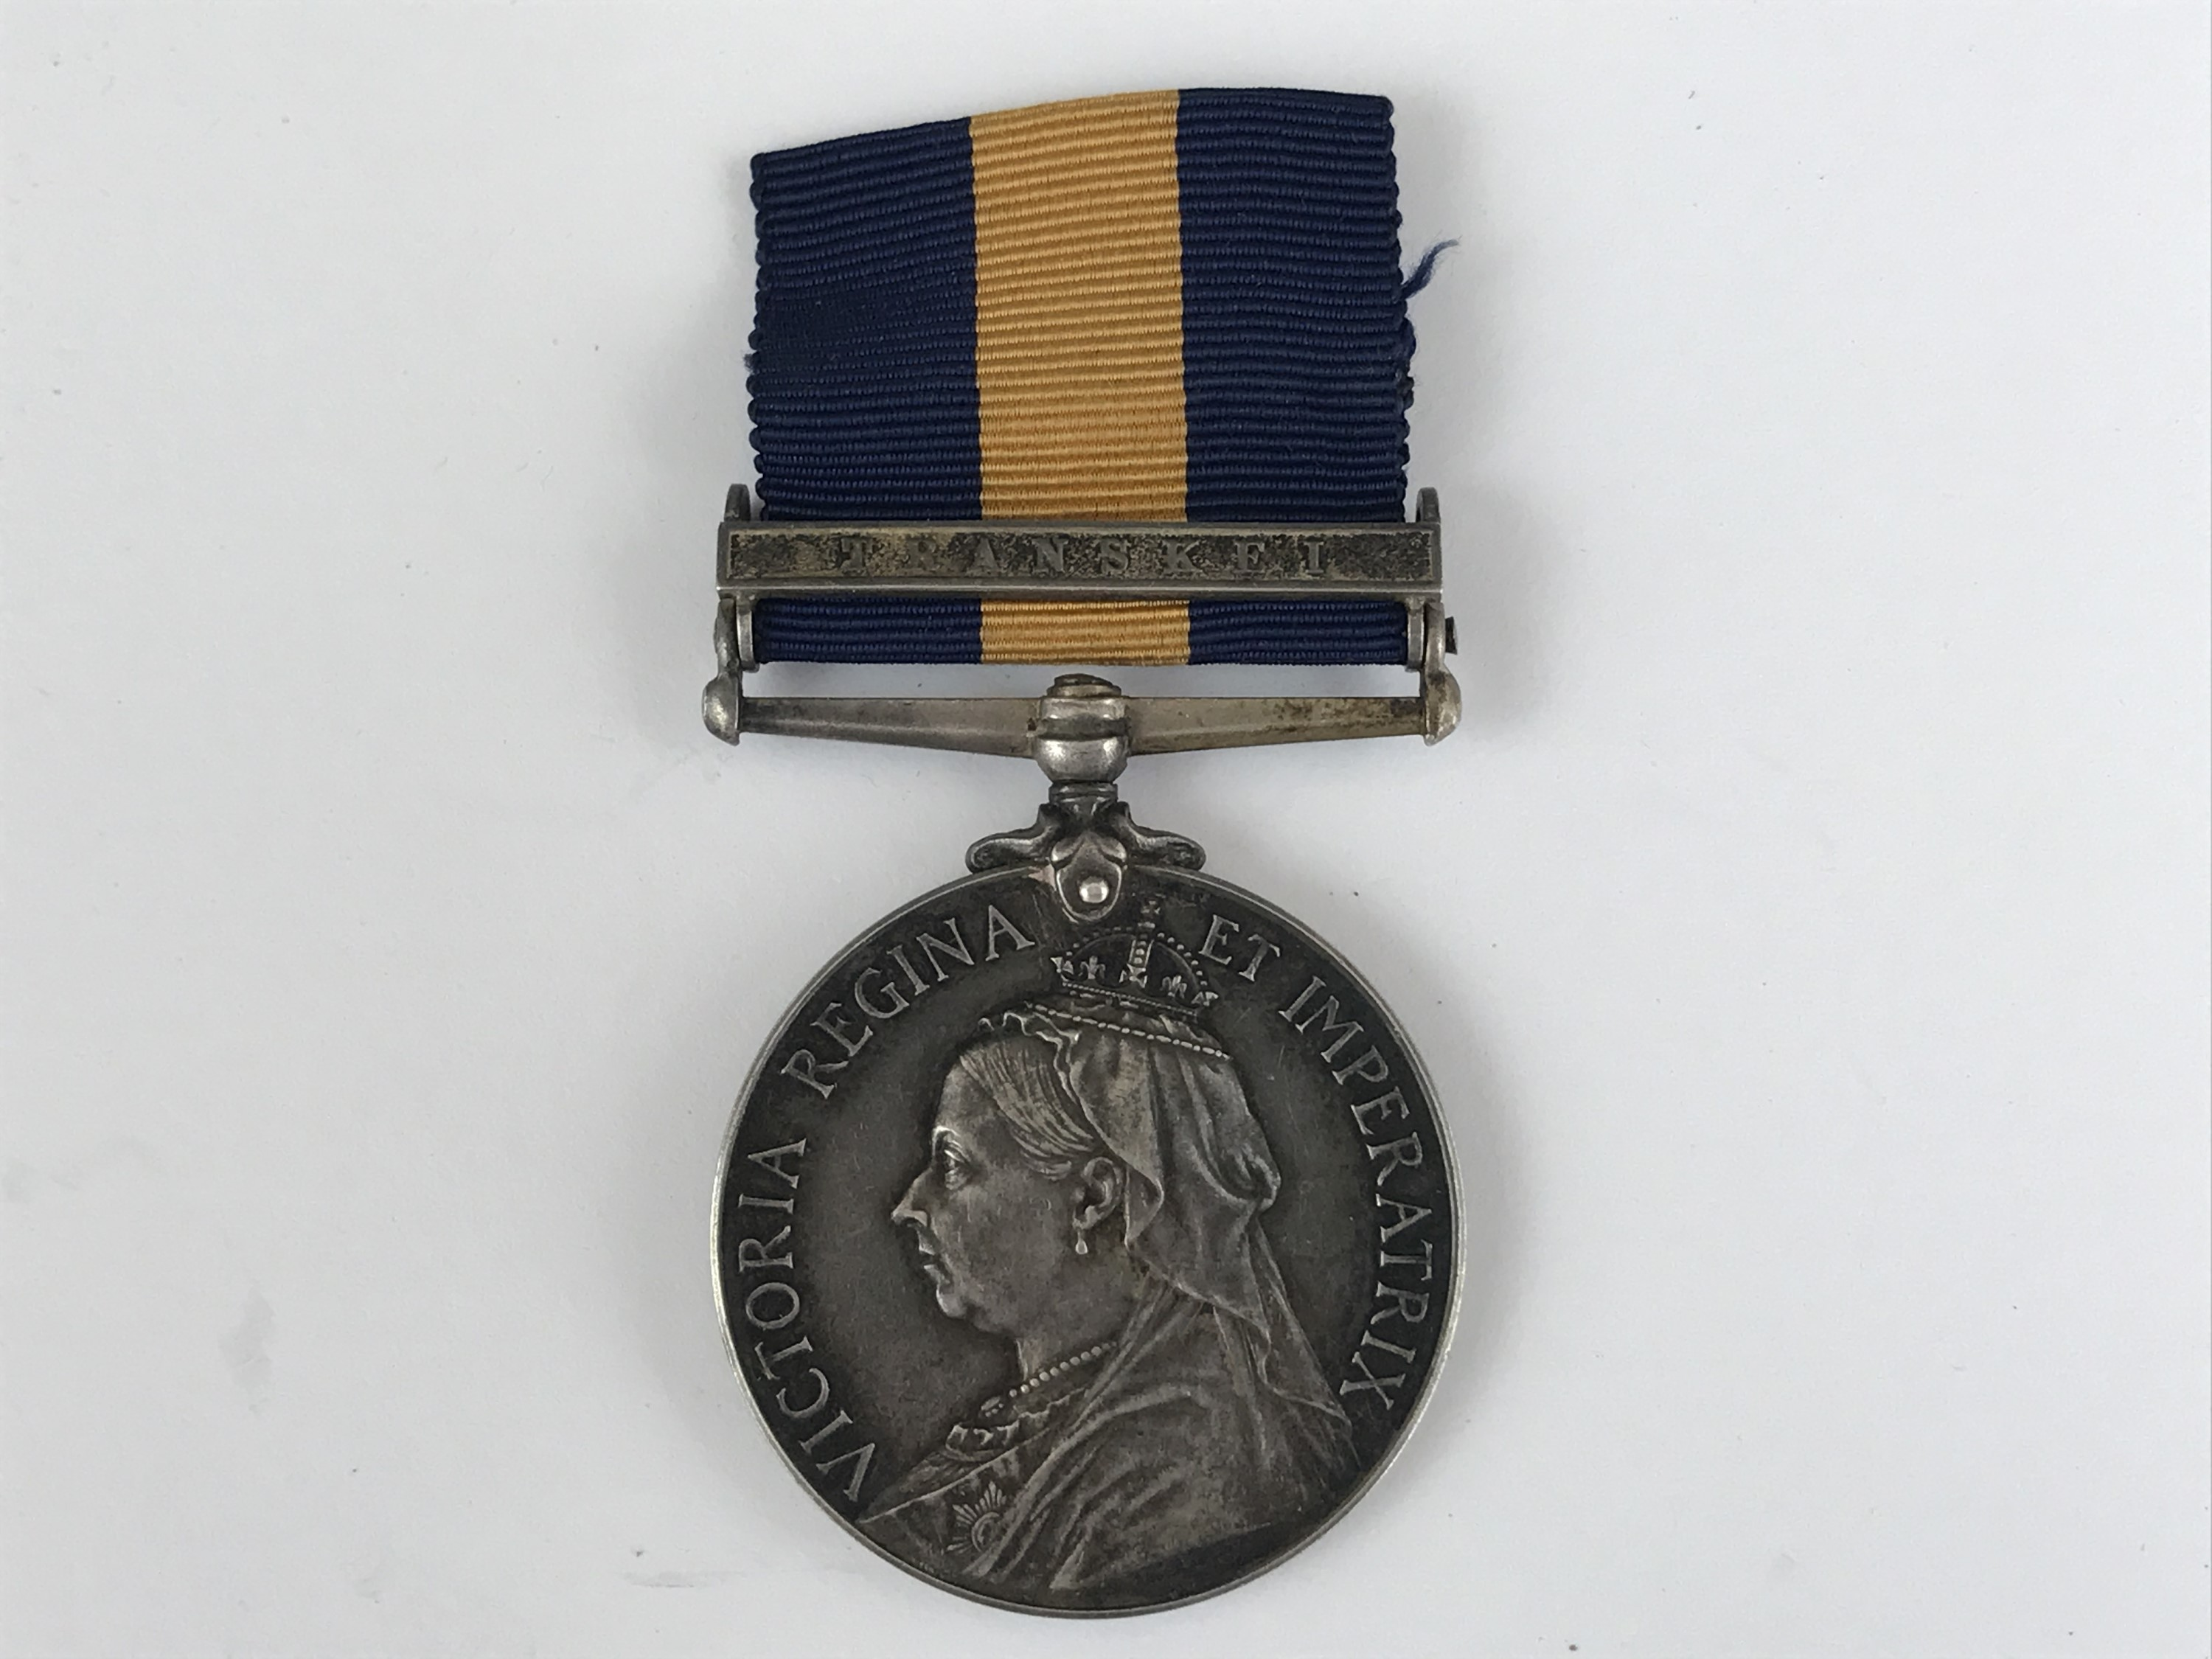 Lot 27 - A Cape of Good Hope General Service Medal with Transkei clasp to Pte R S Scott, Websters Rovs